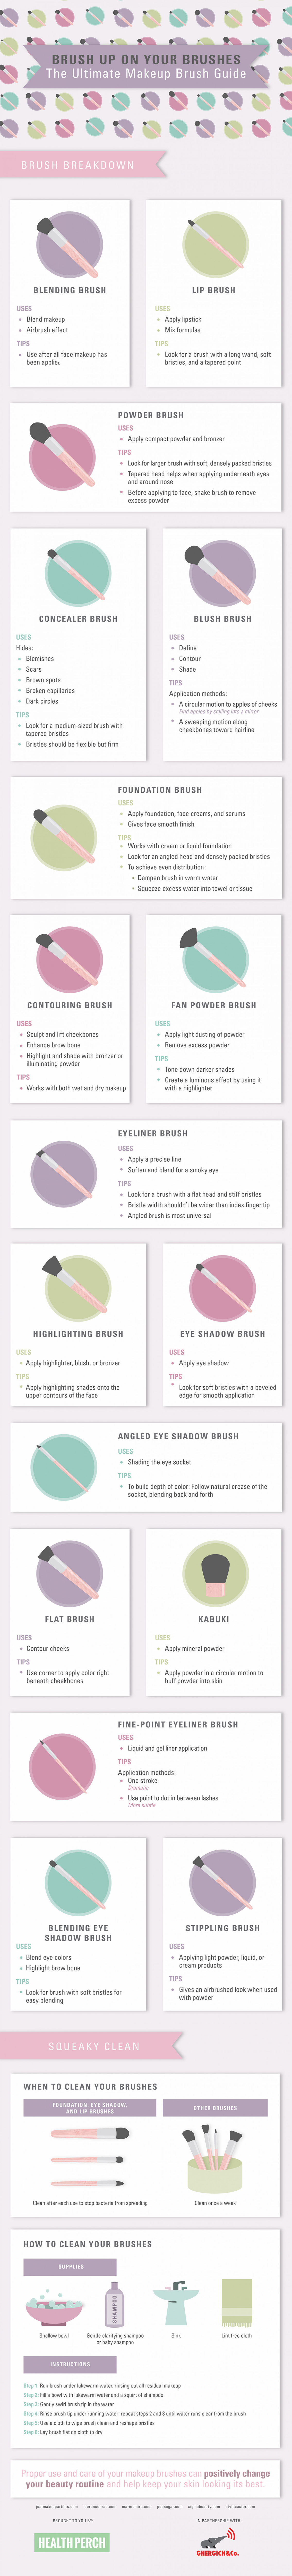 Brush Up on Your Brushes Infographic